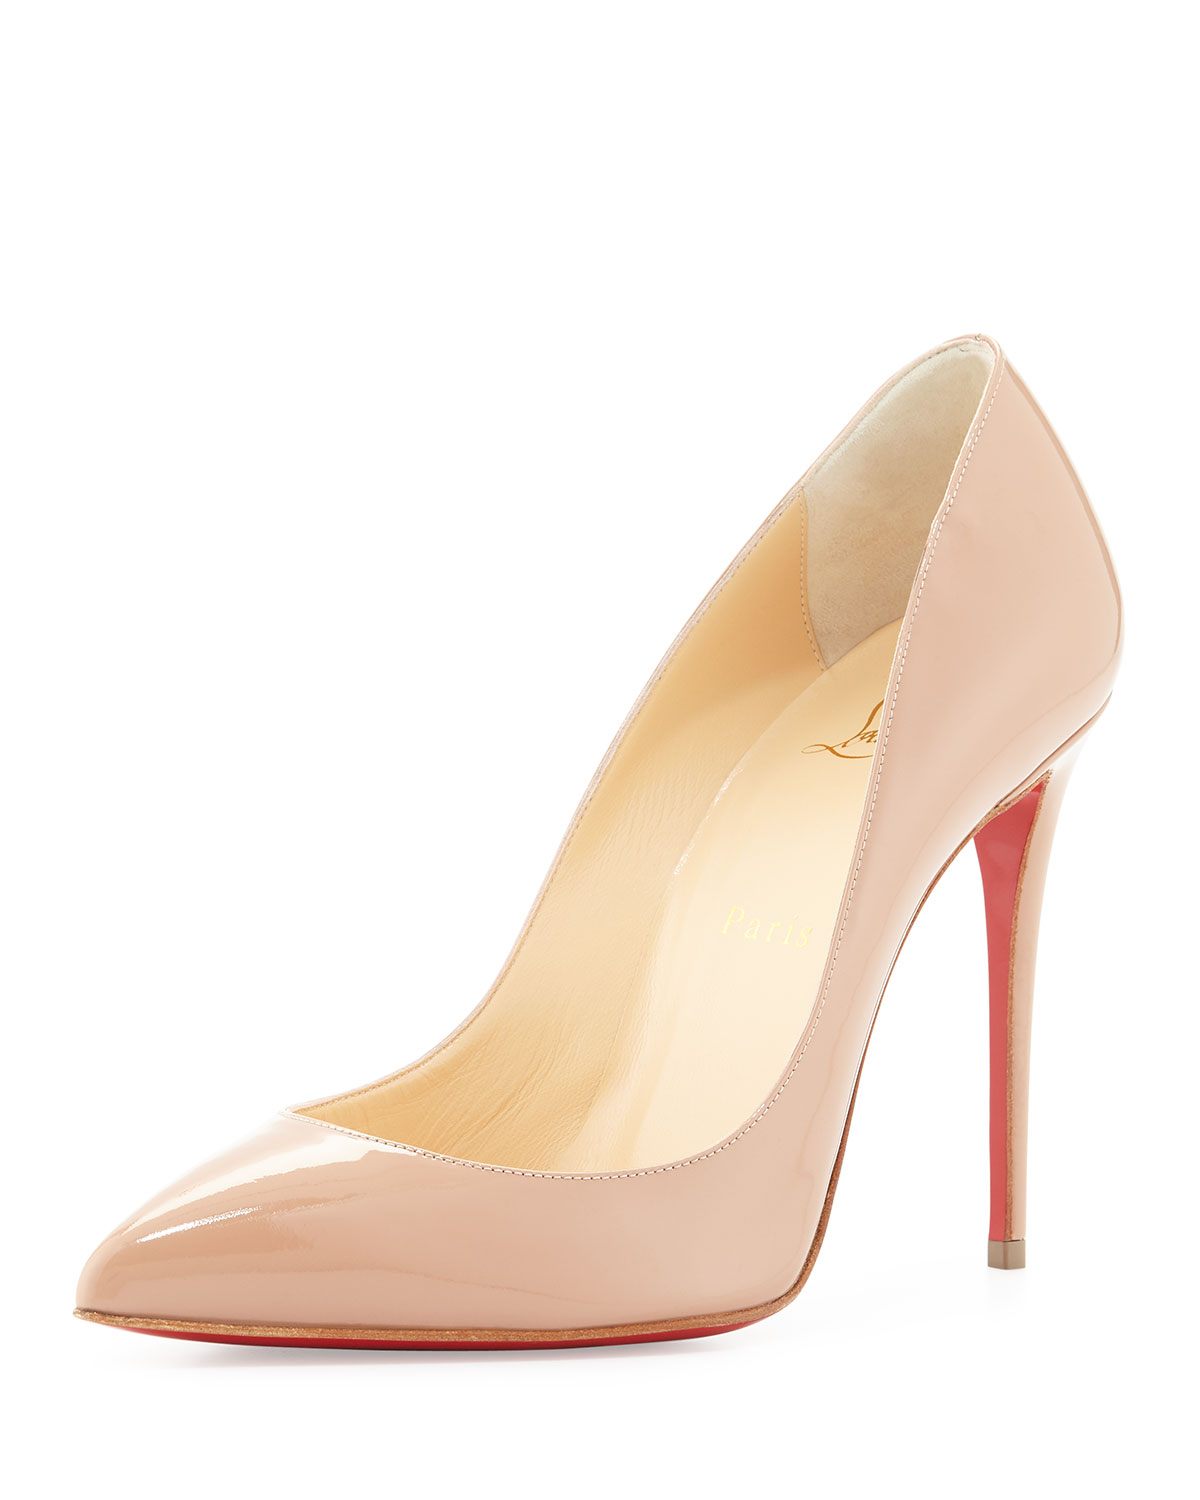 Christian Louboutin Pigalle Follies Patent Point-Toe Red Sole Pump, Nude, Women's, Size: 39.5B/9.5B